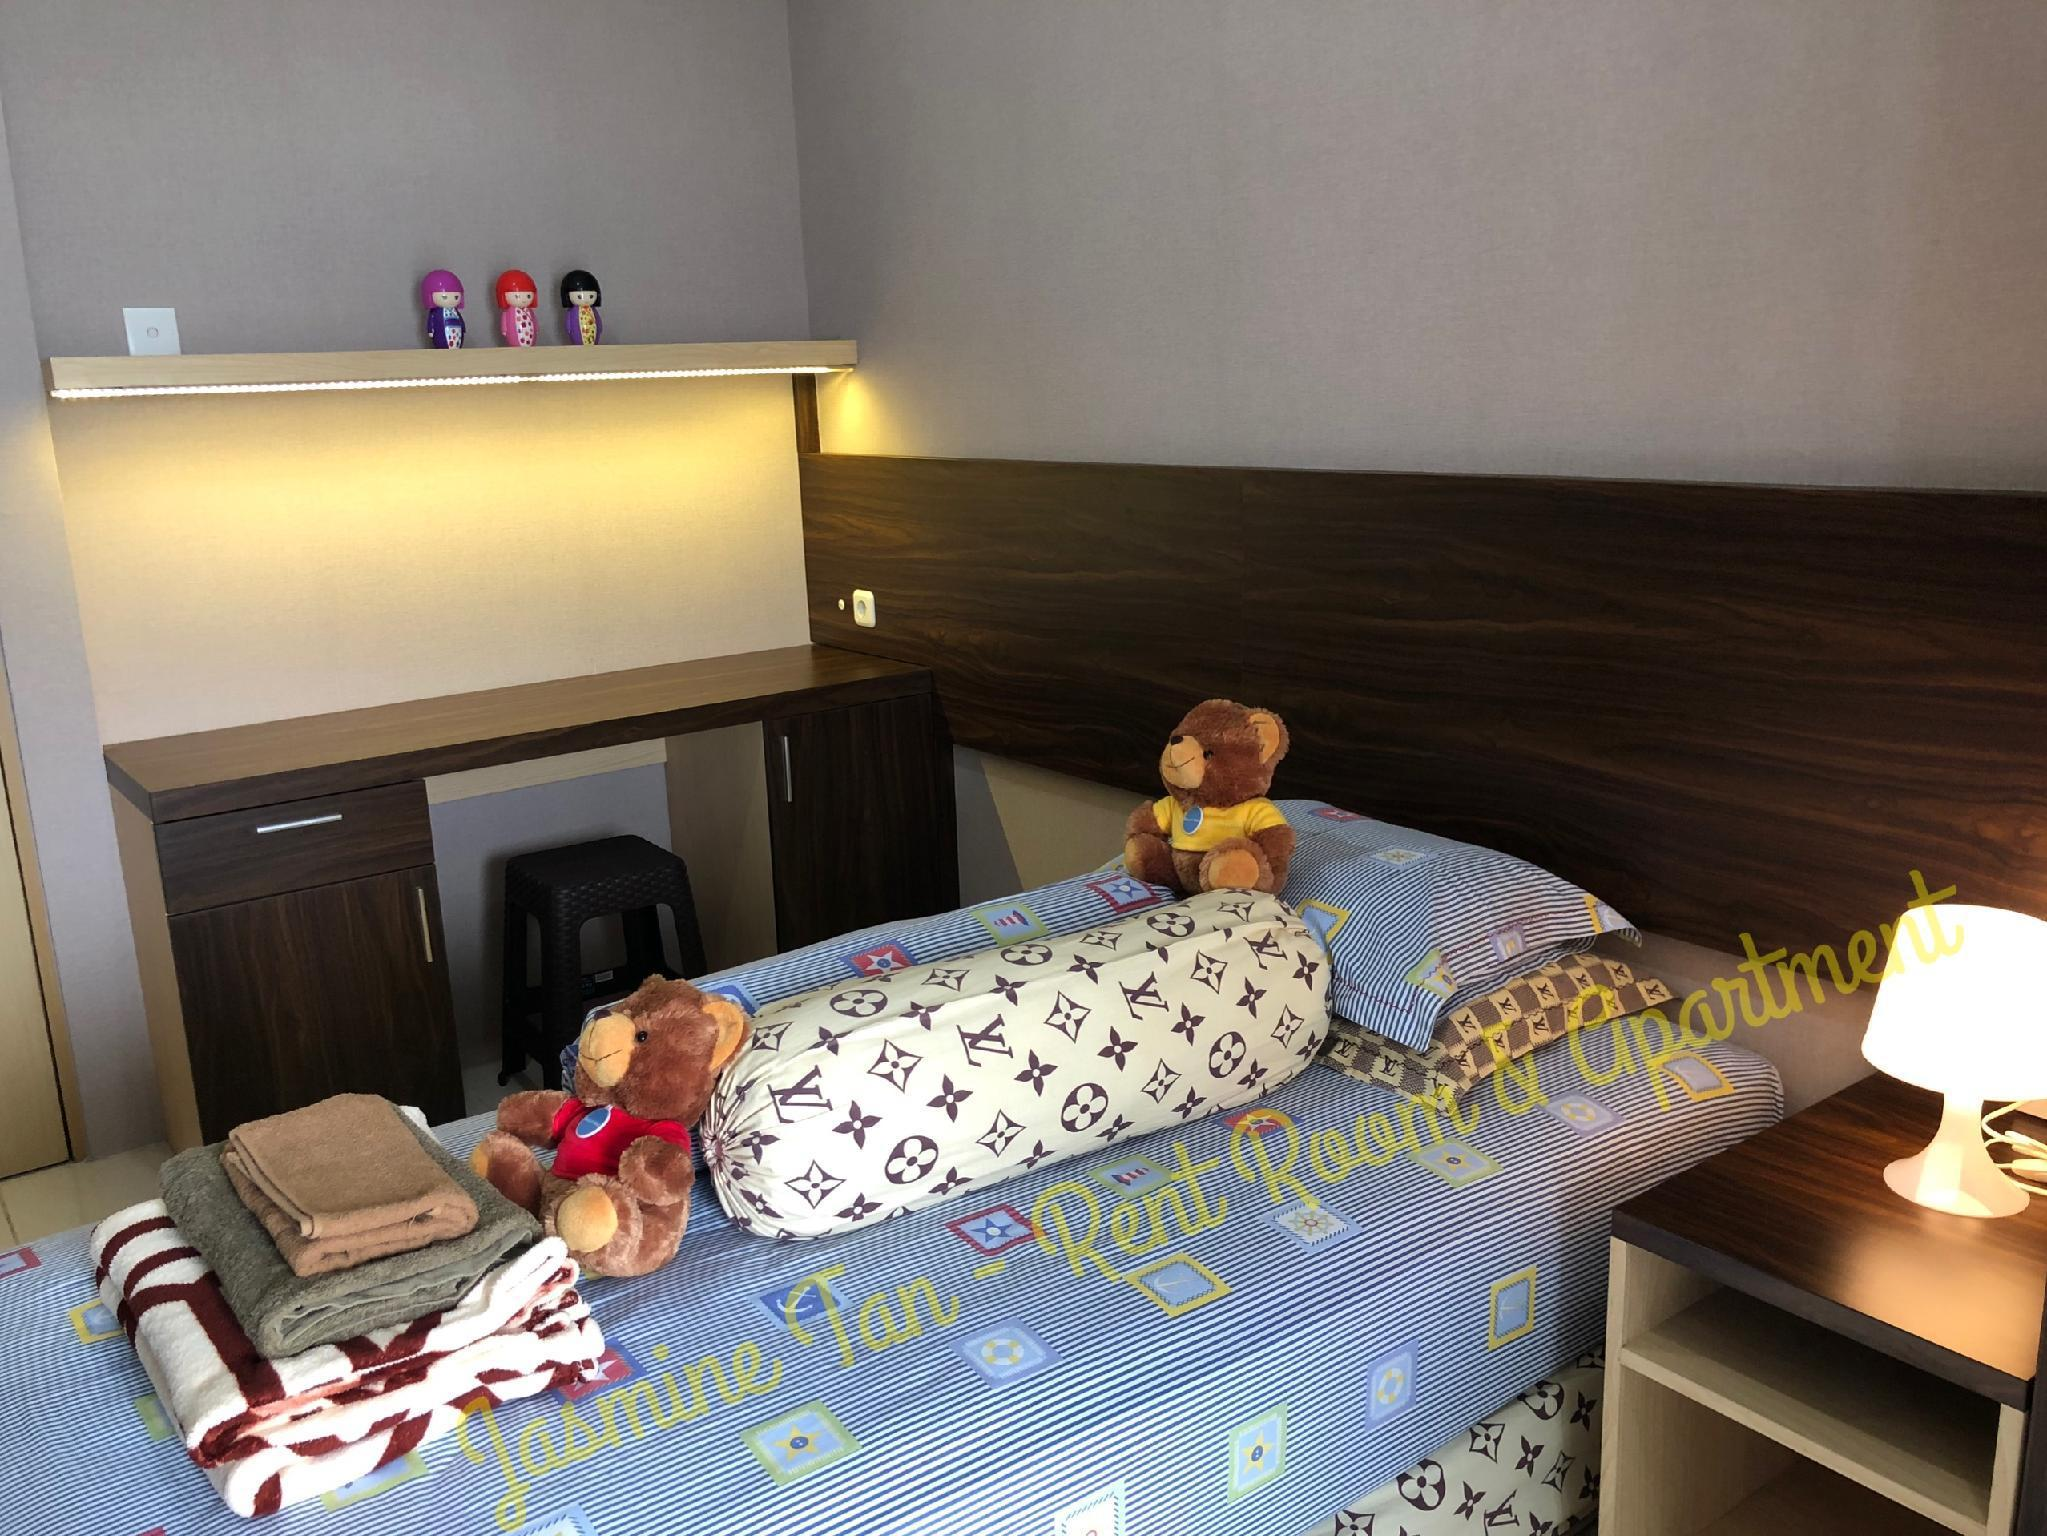 Educity Studio Apartment (Pakuwoncity, Surabaya)